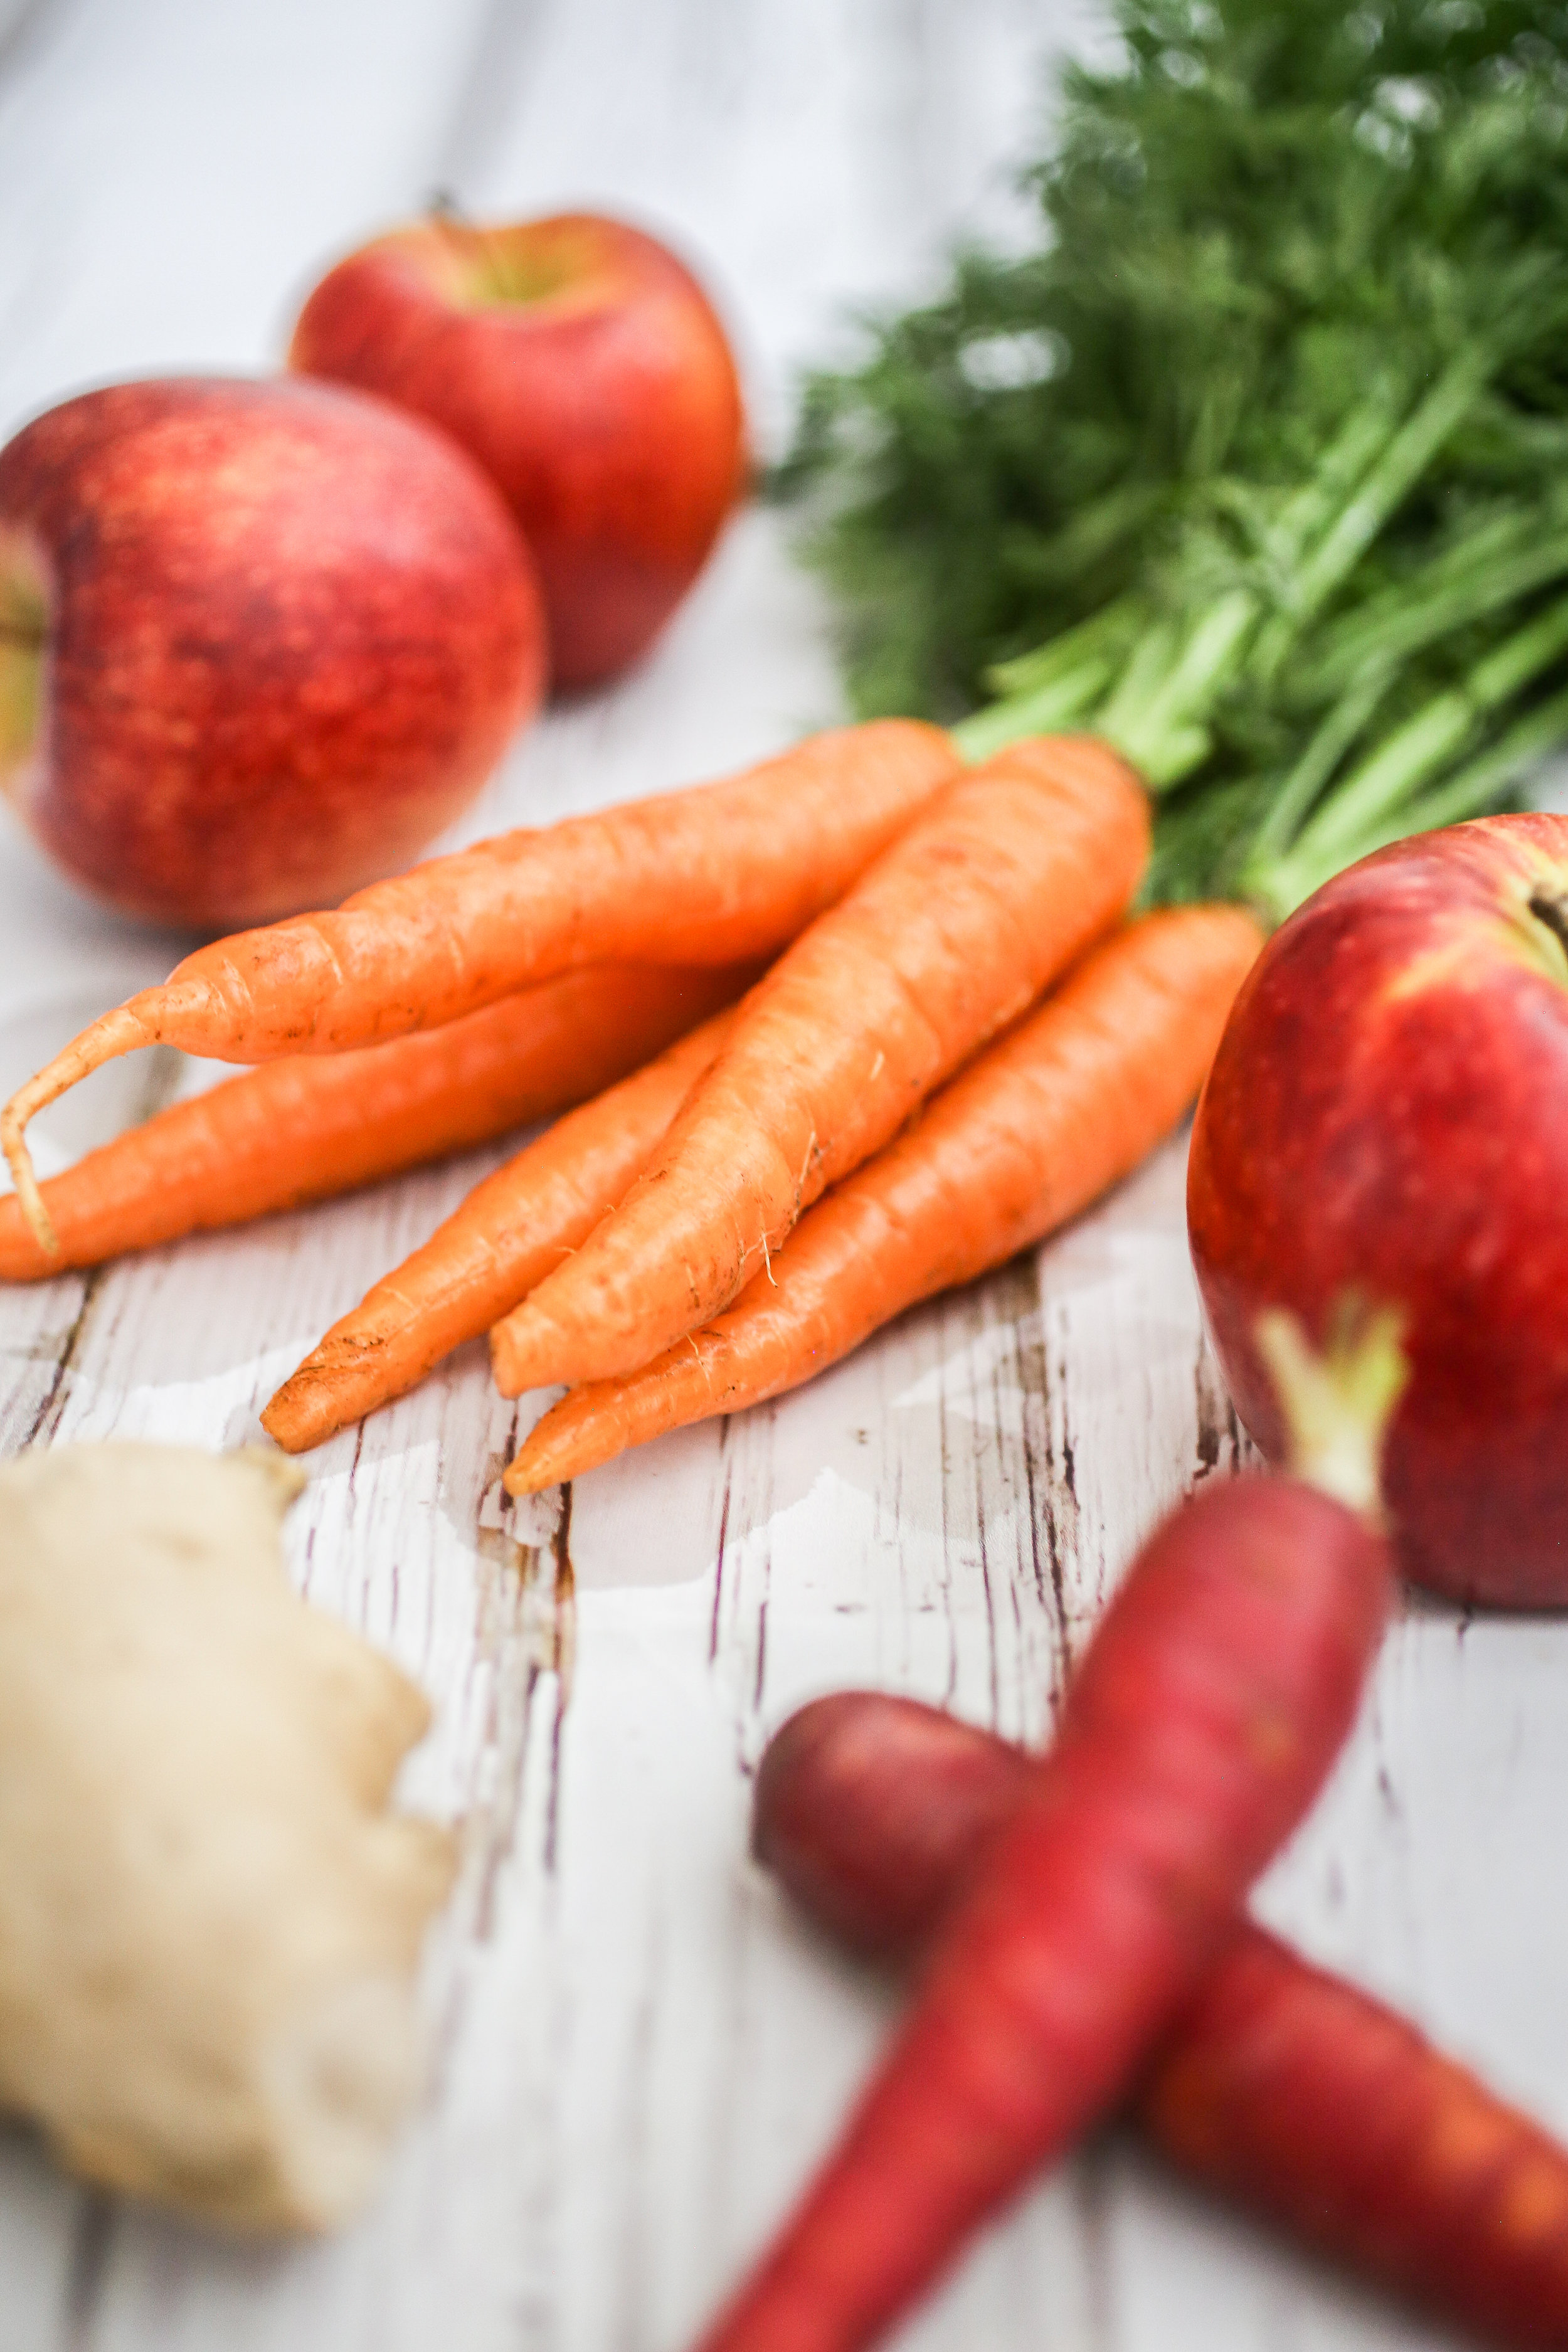 "- BASIC JUICE RECIPE:4-5 CARROTS (MED)1-2 STALKS CELERY1/2 BEET ROOT 1 GREEN APPLE (unpeeled)SMALL BUNCH DARK LEAFY GREENSABOUT 1/2"" OF GINGER ROOTA PIECE OF TURMERIC ROOT1 GARLIC POD"